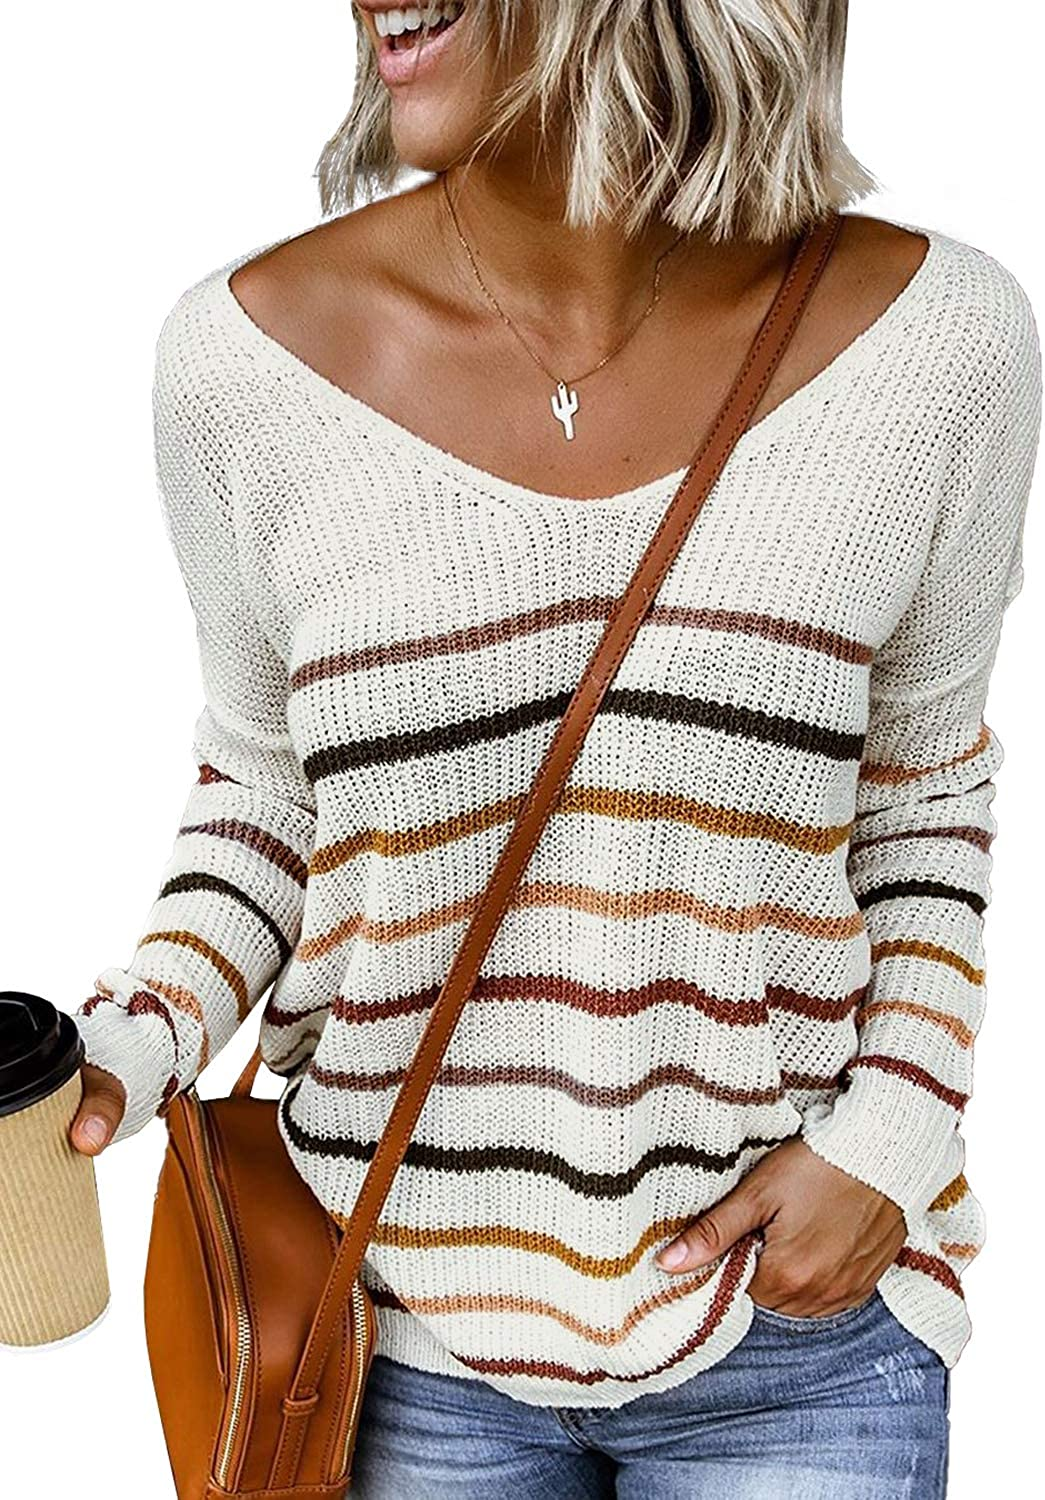 Tiksawon Womens Striped Lightweight Oversized Sweaters Off The Shoulder Long Sleeve Pullover Tops Blouses